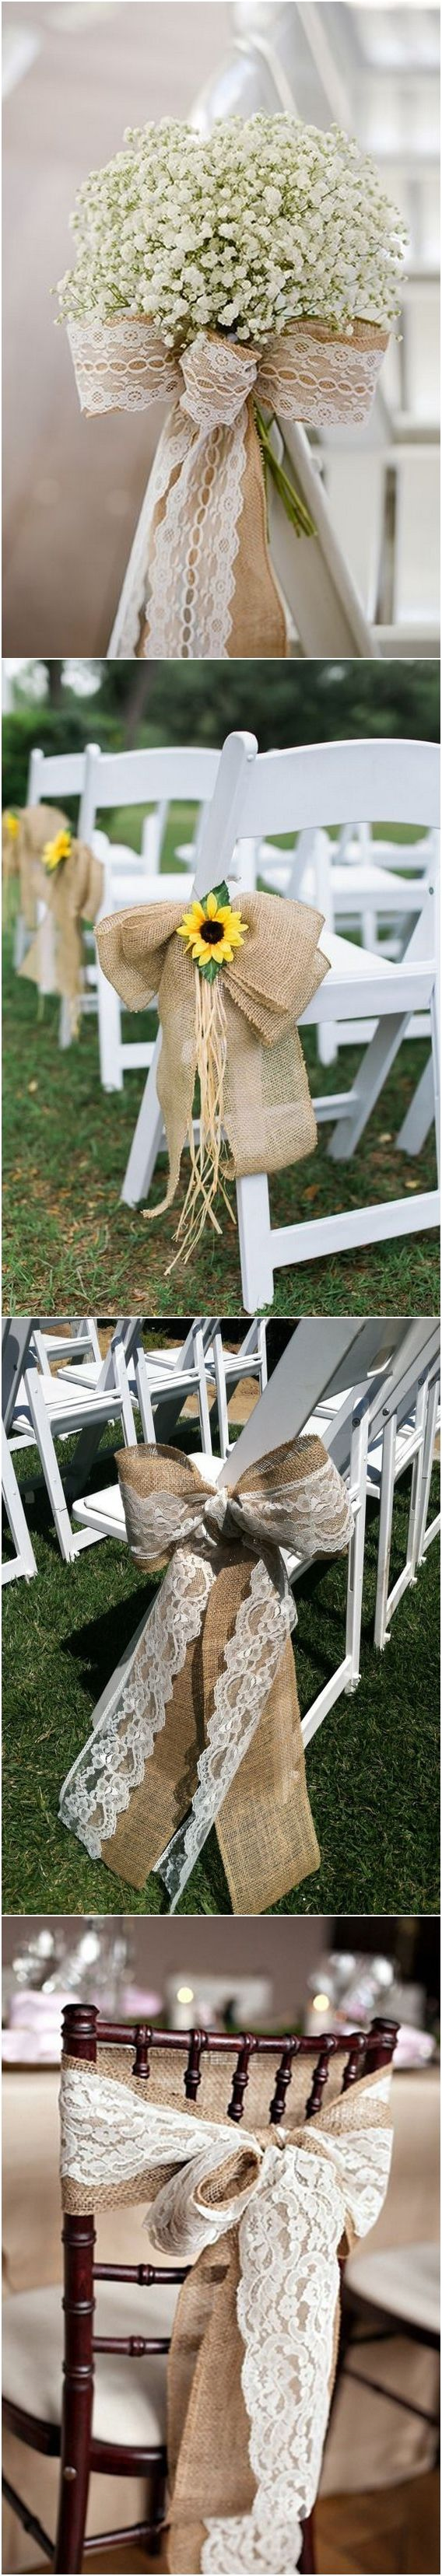 rustic country burlap wedding chair ideas #weddings #countryweddings #weddingideas